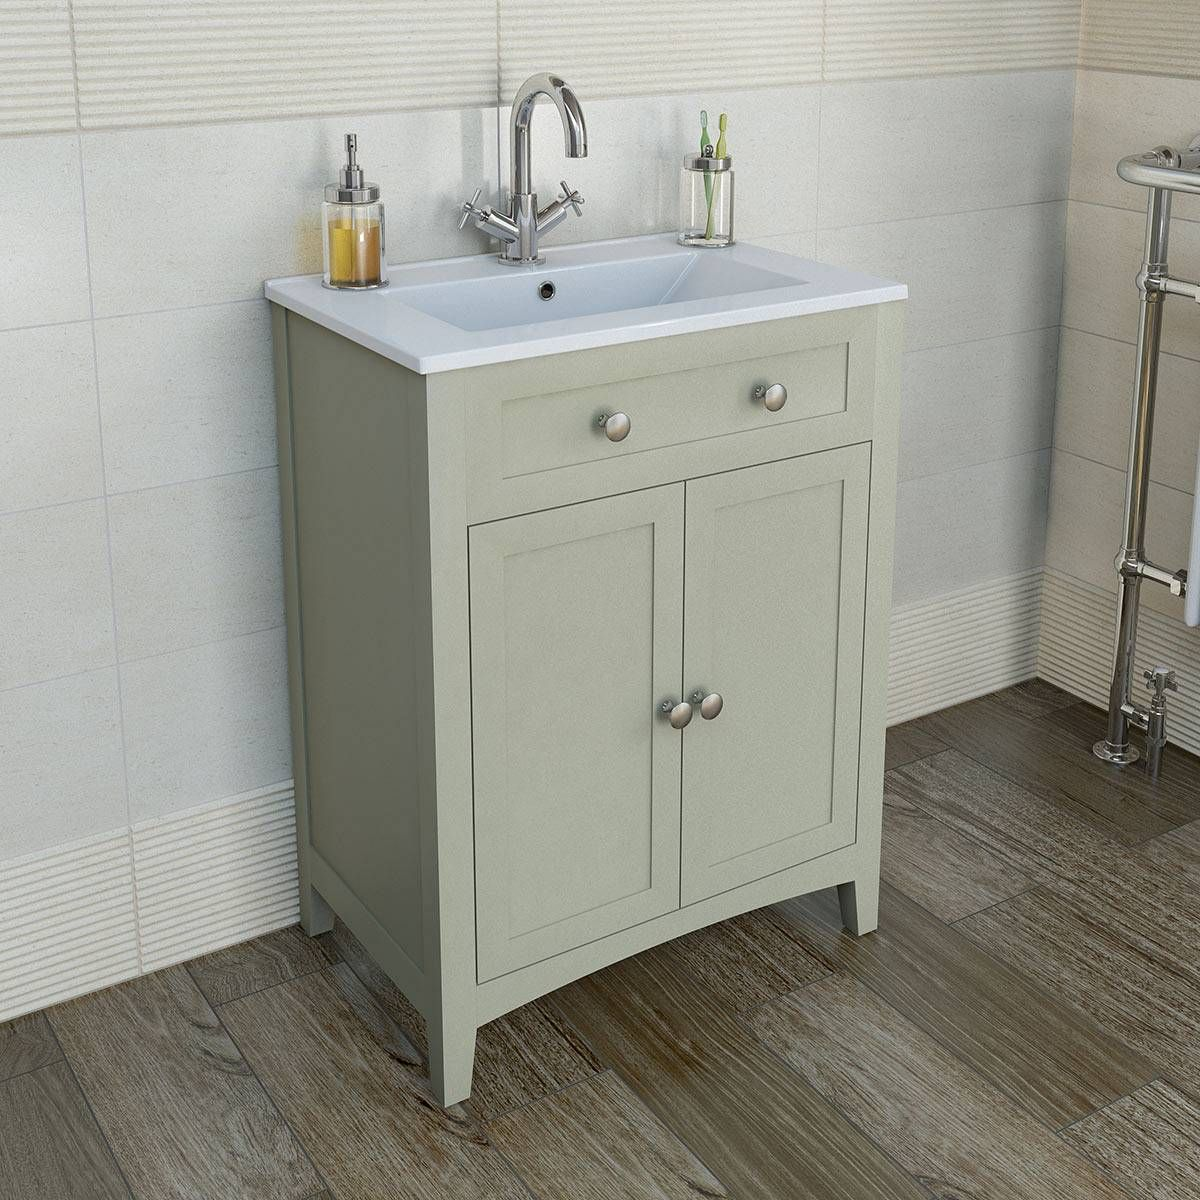 Bathroom vanity basin - Bathroom Complete Sink And Cupboard Package Camberley Sage 600 Door Unit Basin Now Only From Victoria Plumb